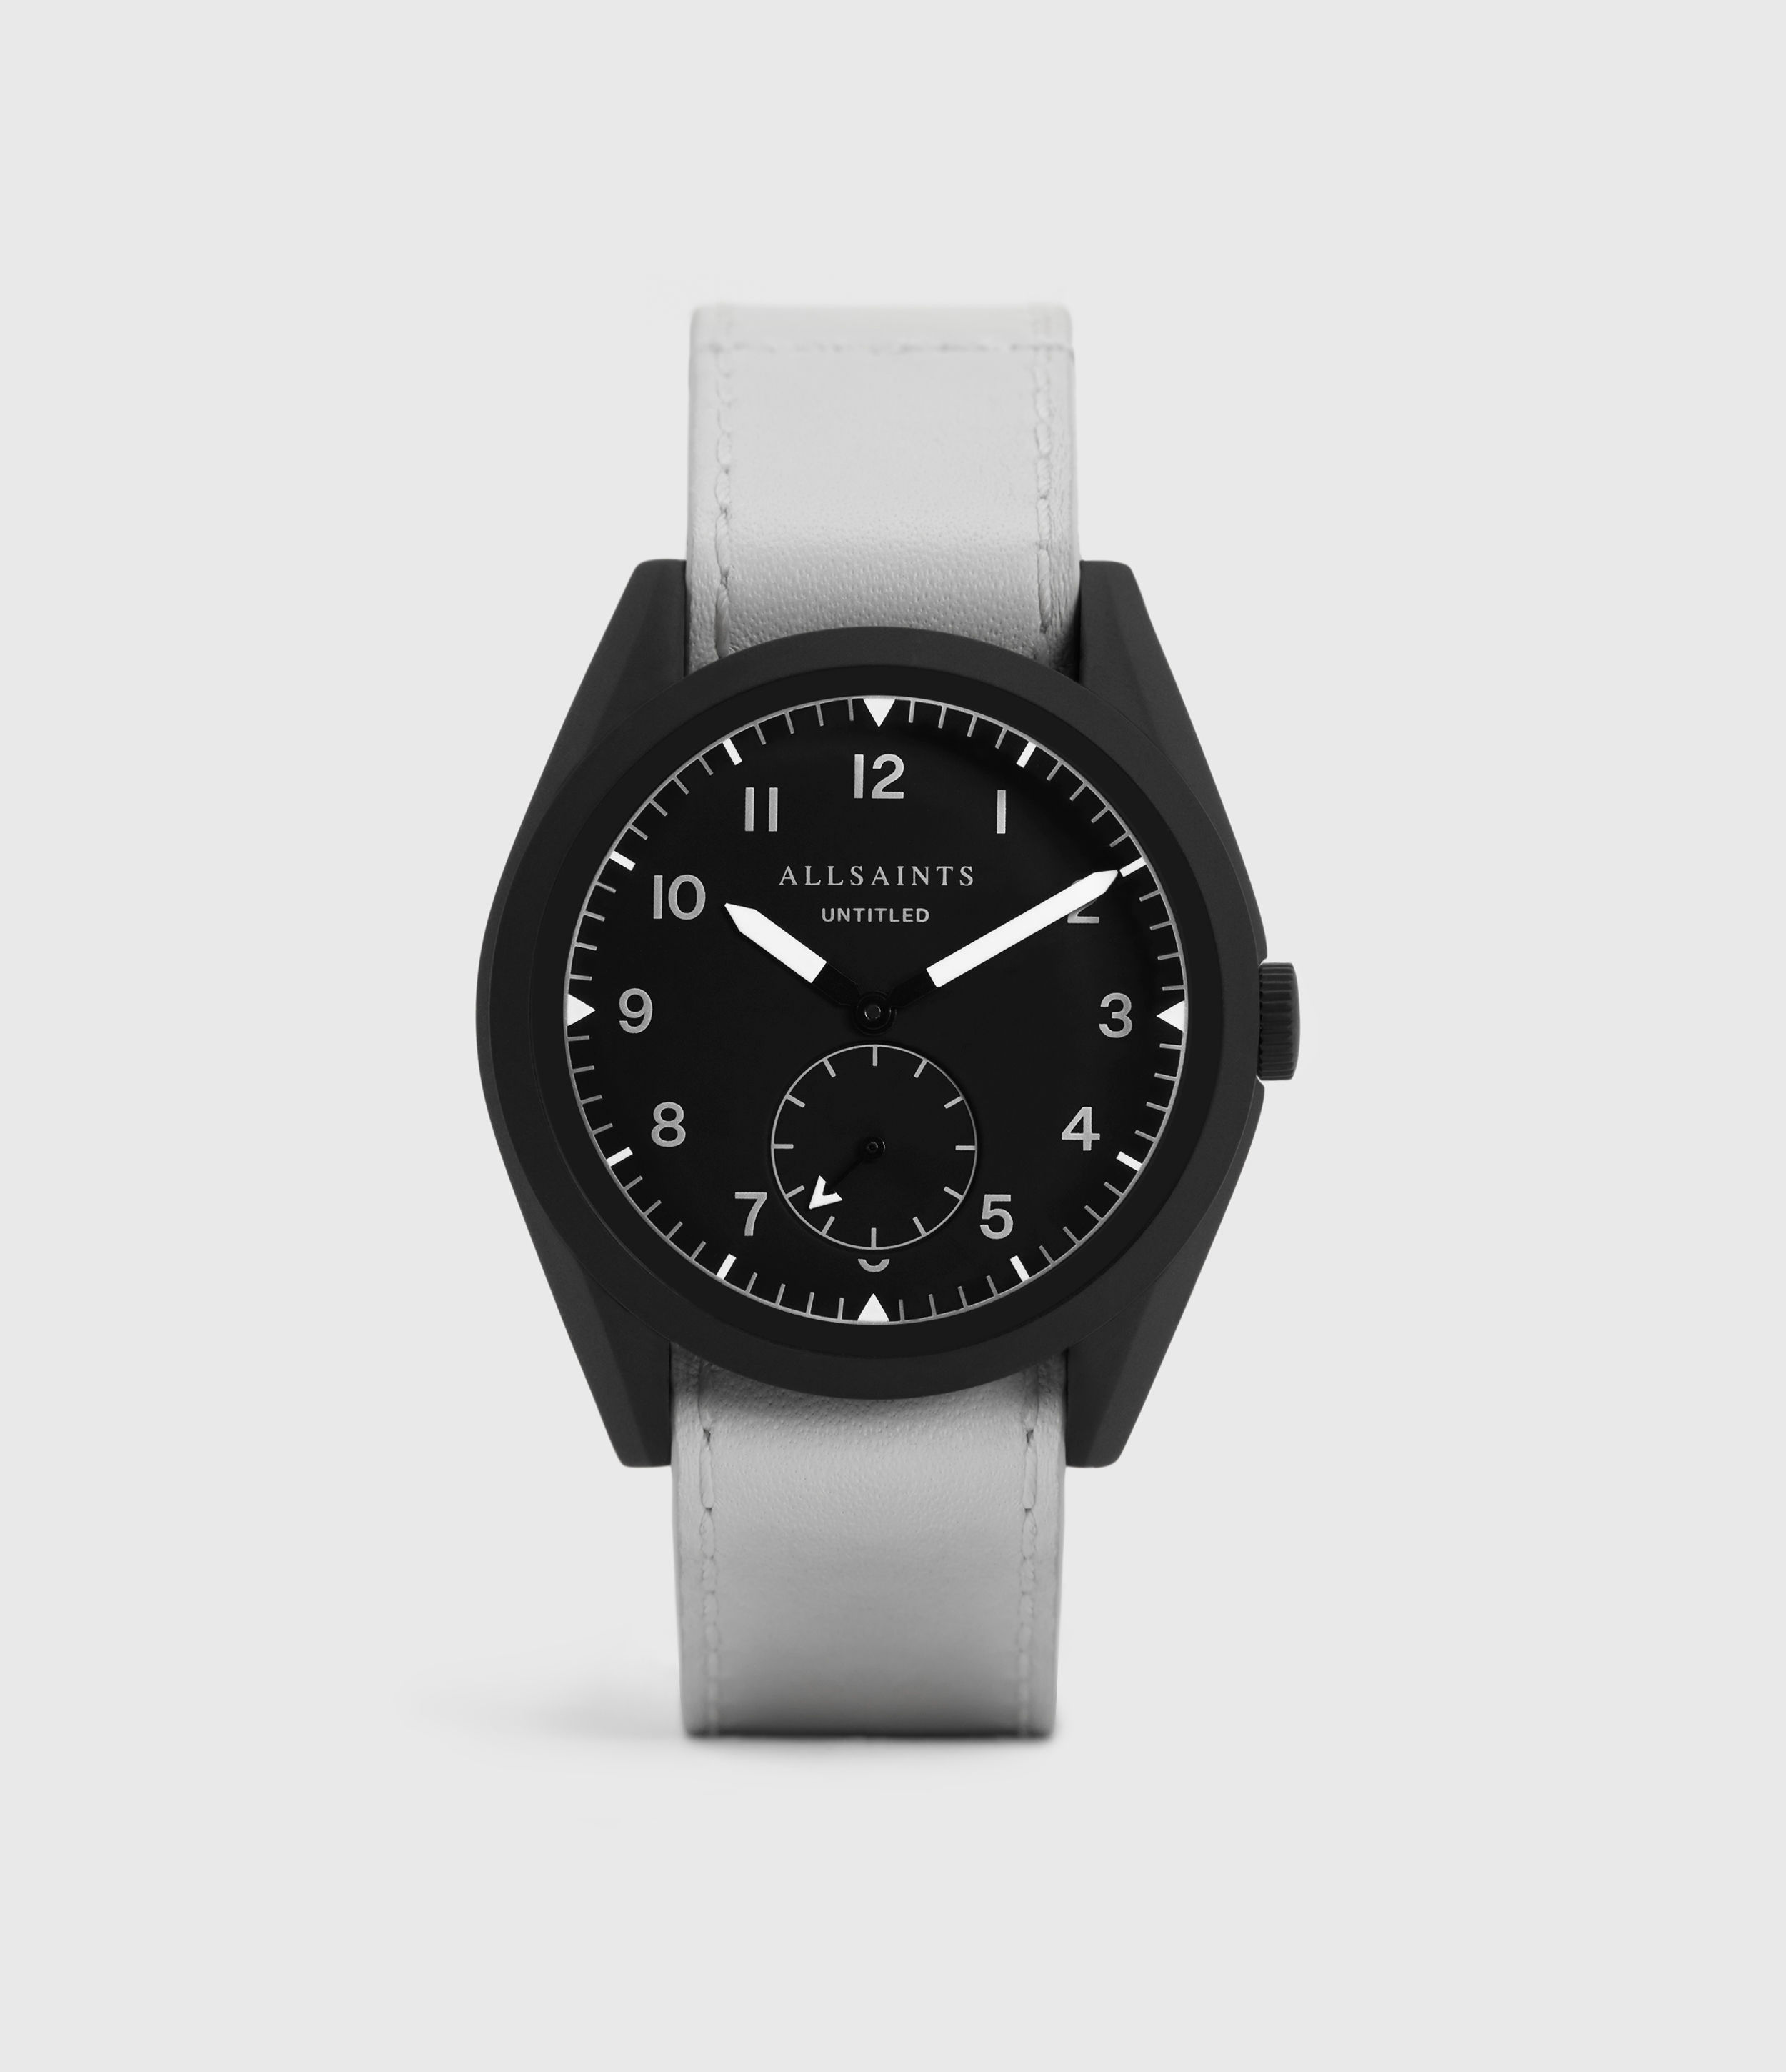 AllSaints Untitled IV Matte Black Stainless Steel and White Leather Watch